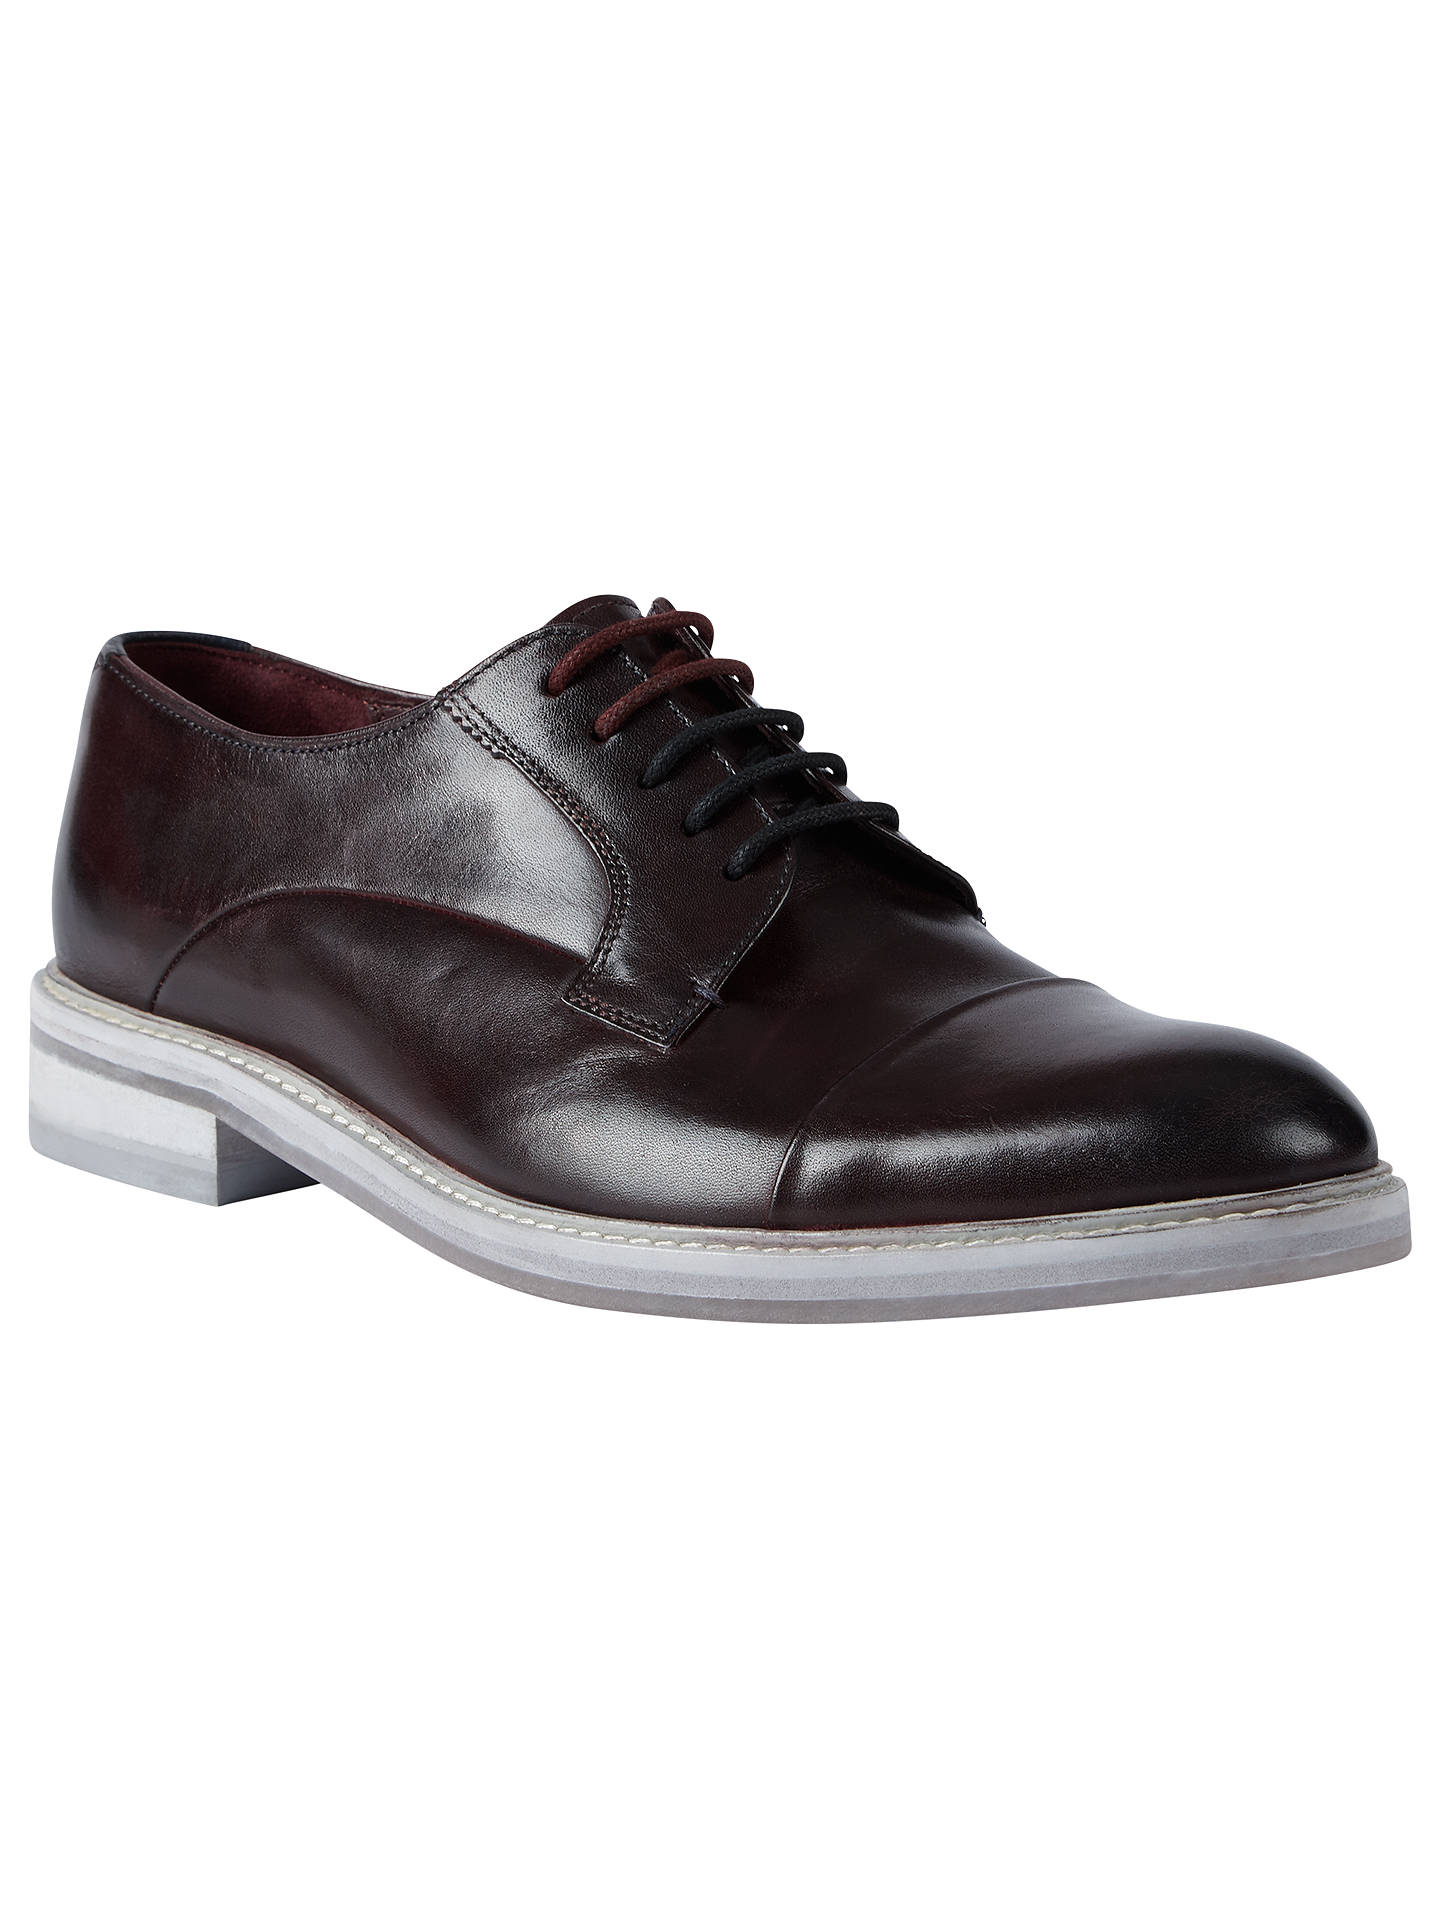 e7395696094e7 Ted Baker Aokii Derby Shoes at John Lewis   Partners